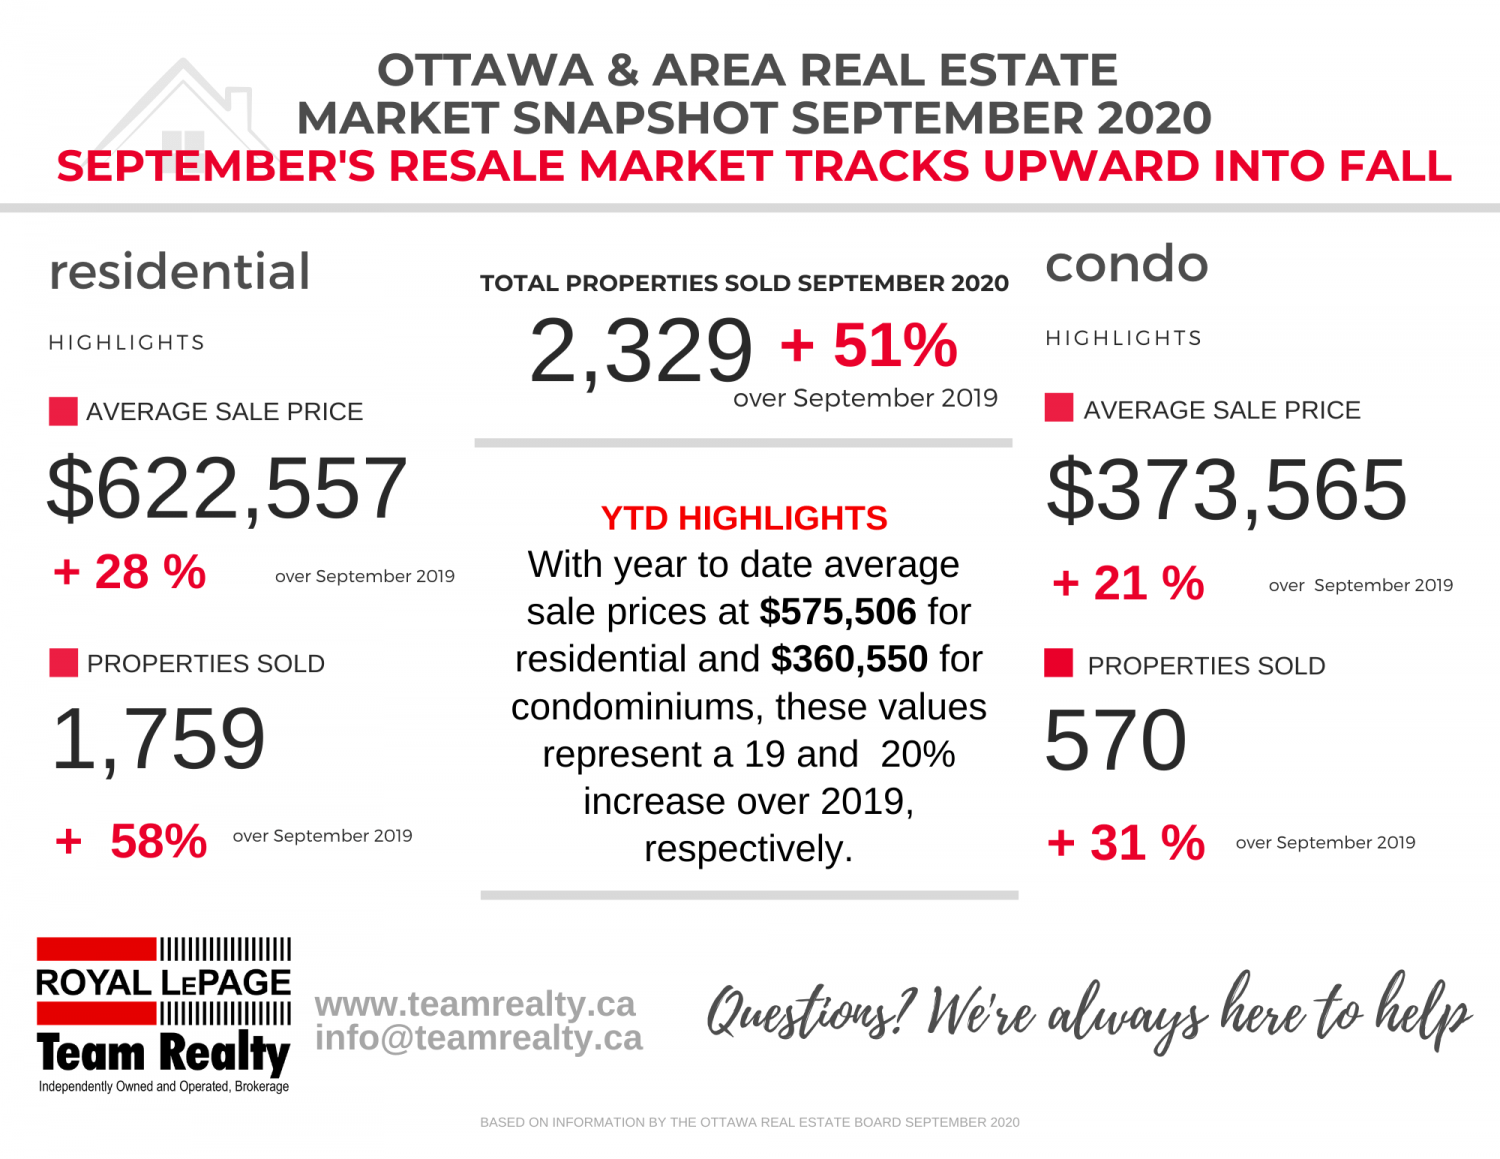 Ottawa Real Estate Market Snapshot for Septemeber 2020